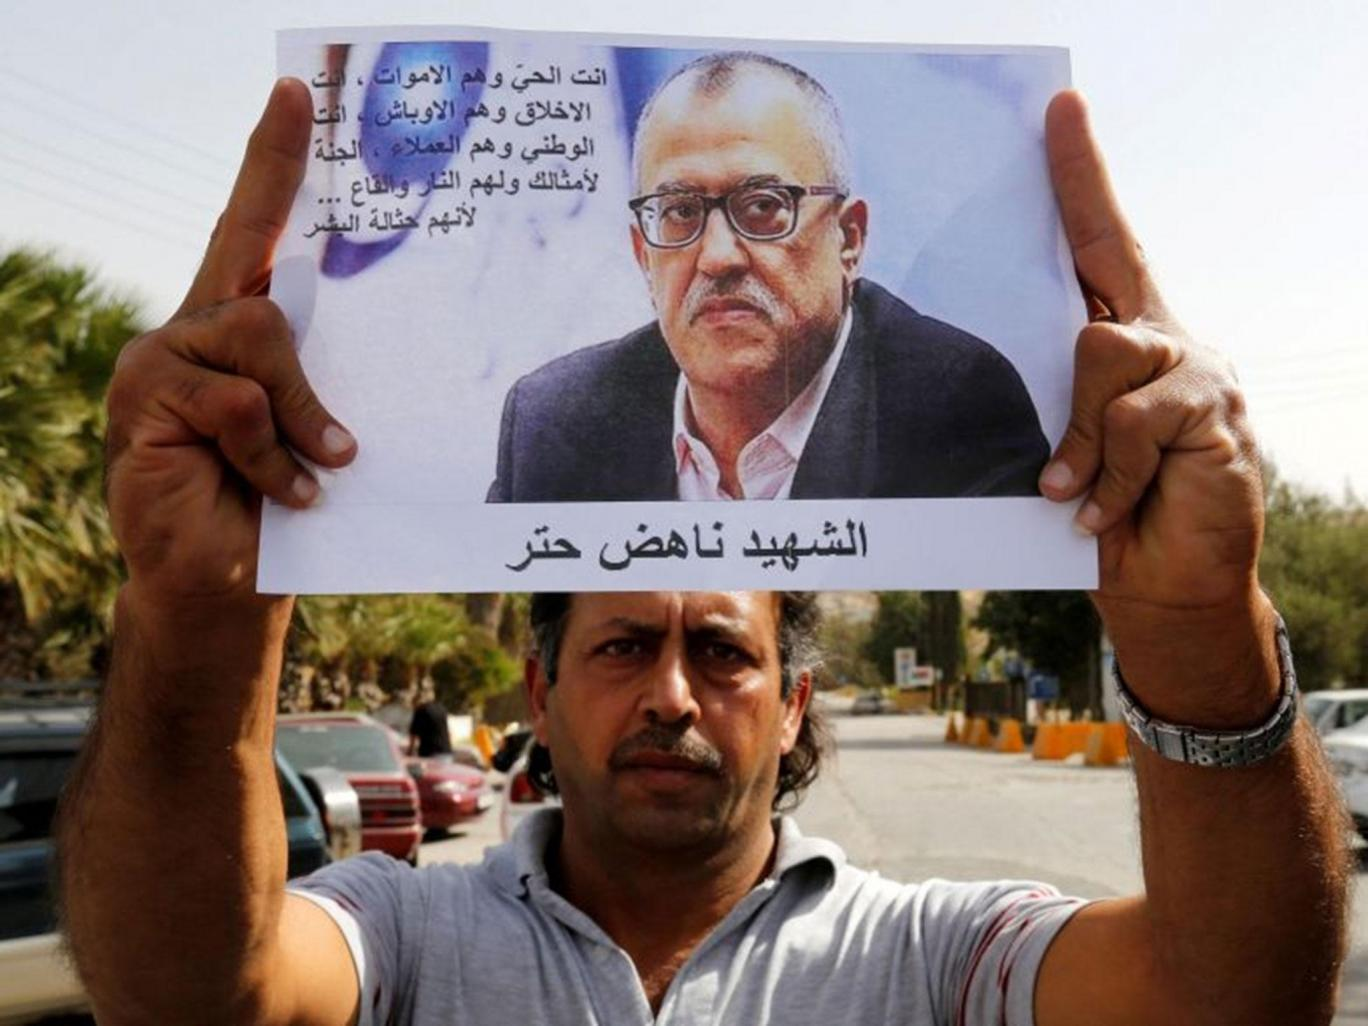 Perfect Assassination of Jordanian Writer - MPC Journal - A relative of Jordanian writer Nahed Hattar holds his picture during a sit-in in the town of Al-Fuheis near Amman, Jordan, 25 September, 2016 Reuters